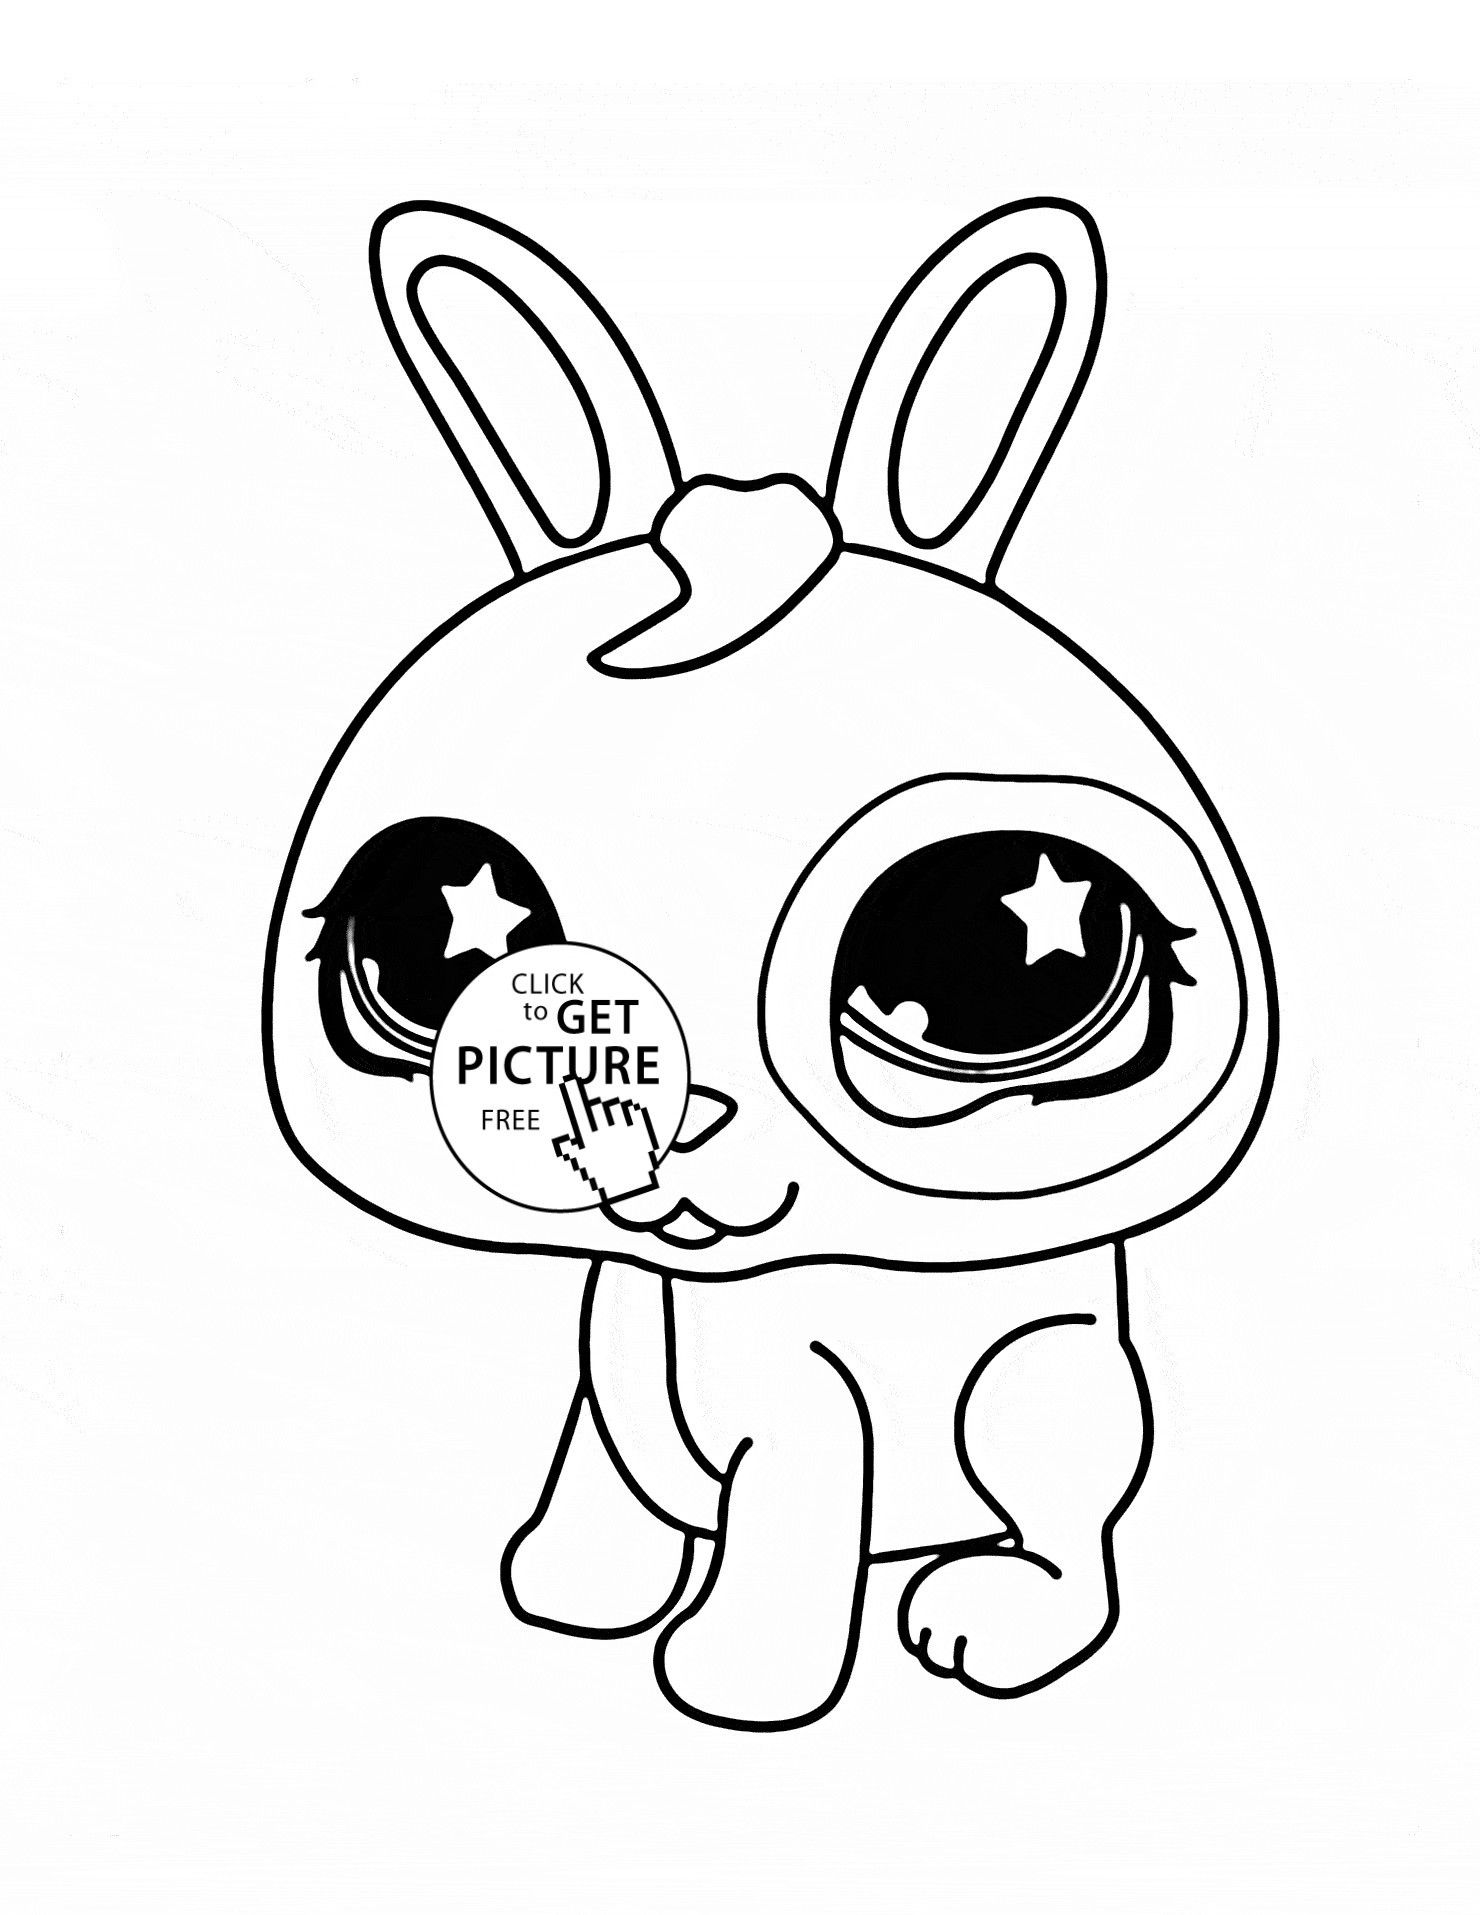 Unique Easter Bunny Pictures To Print Coloring Coloringpages Coloringpagesforkids Colo Zoo Animal Coloring Pages Bunny Coloring Pages Animal Coloring Pages